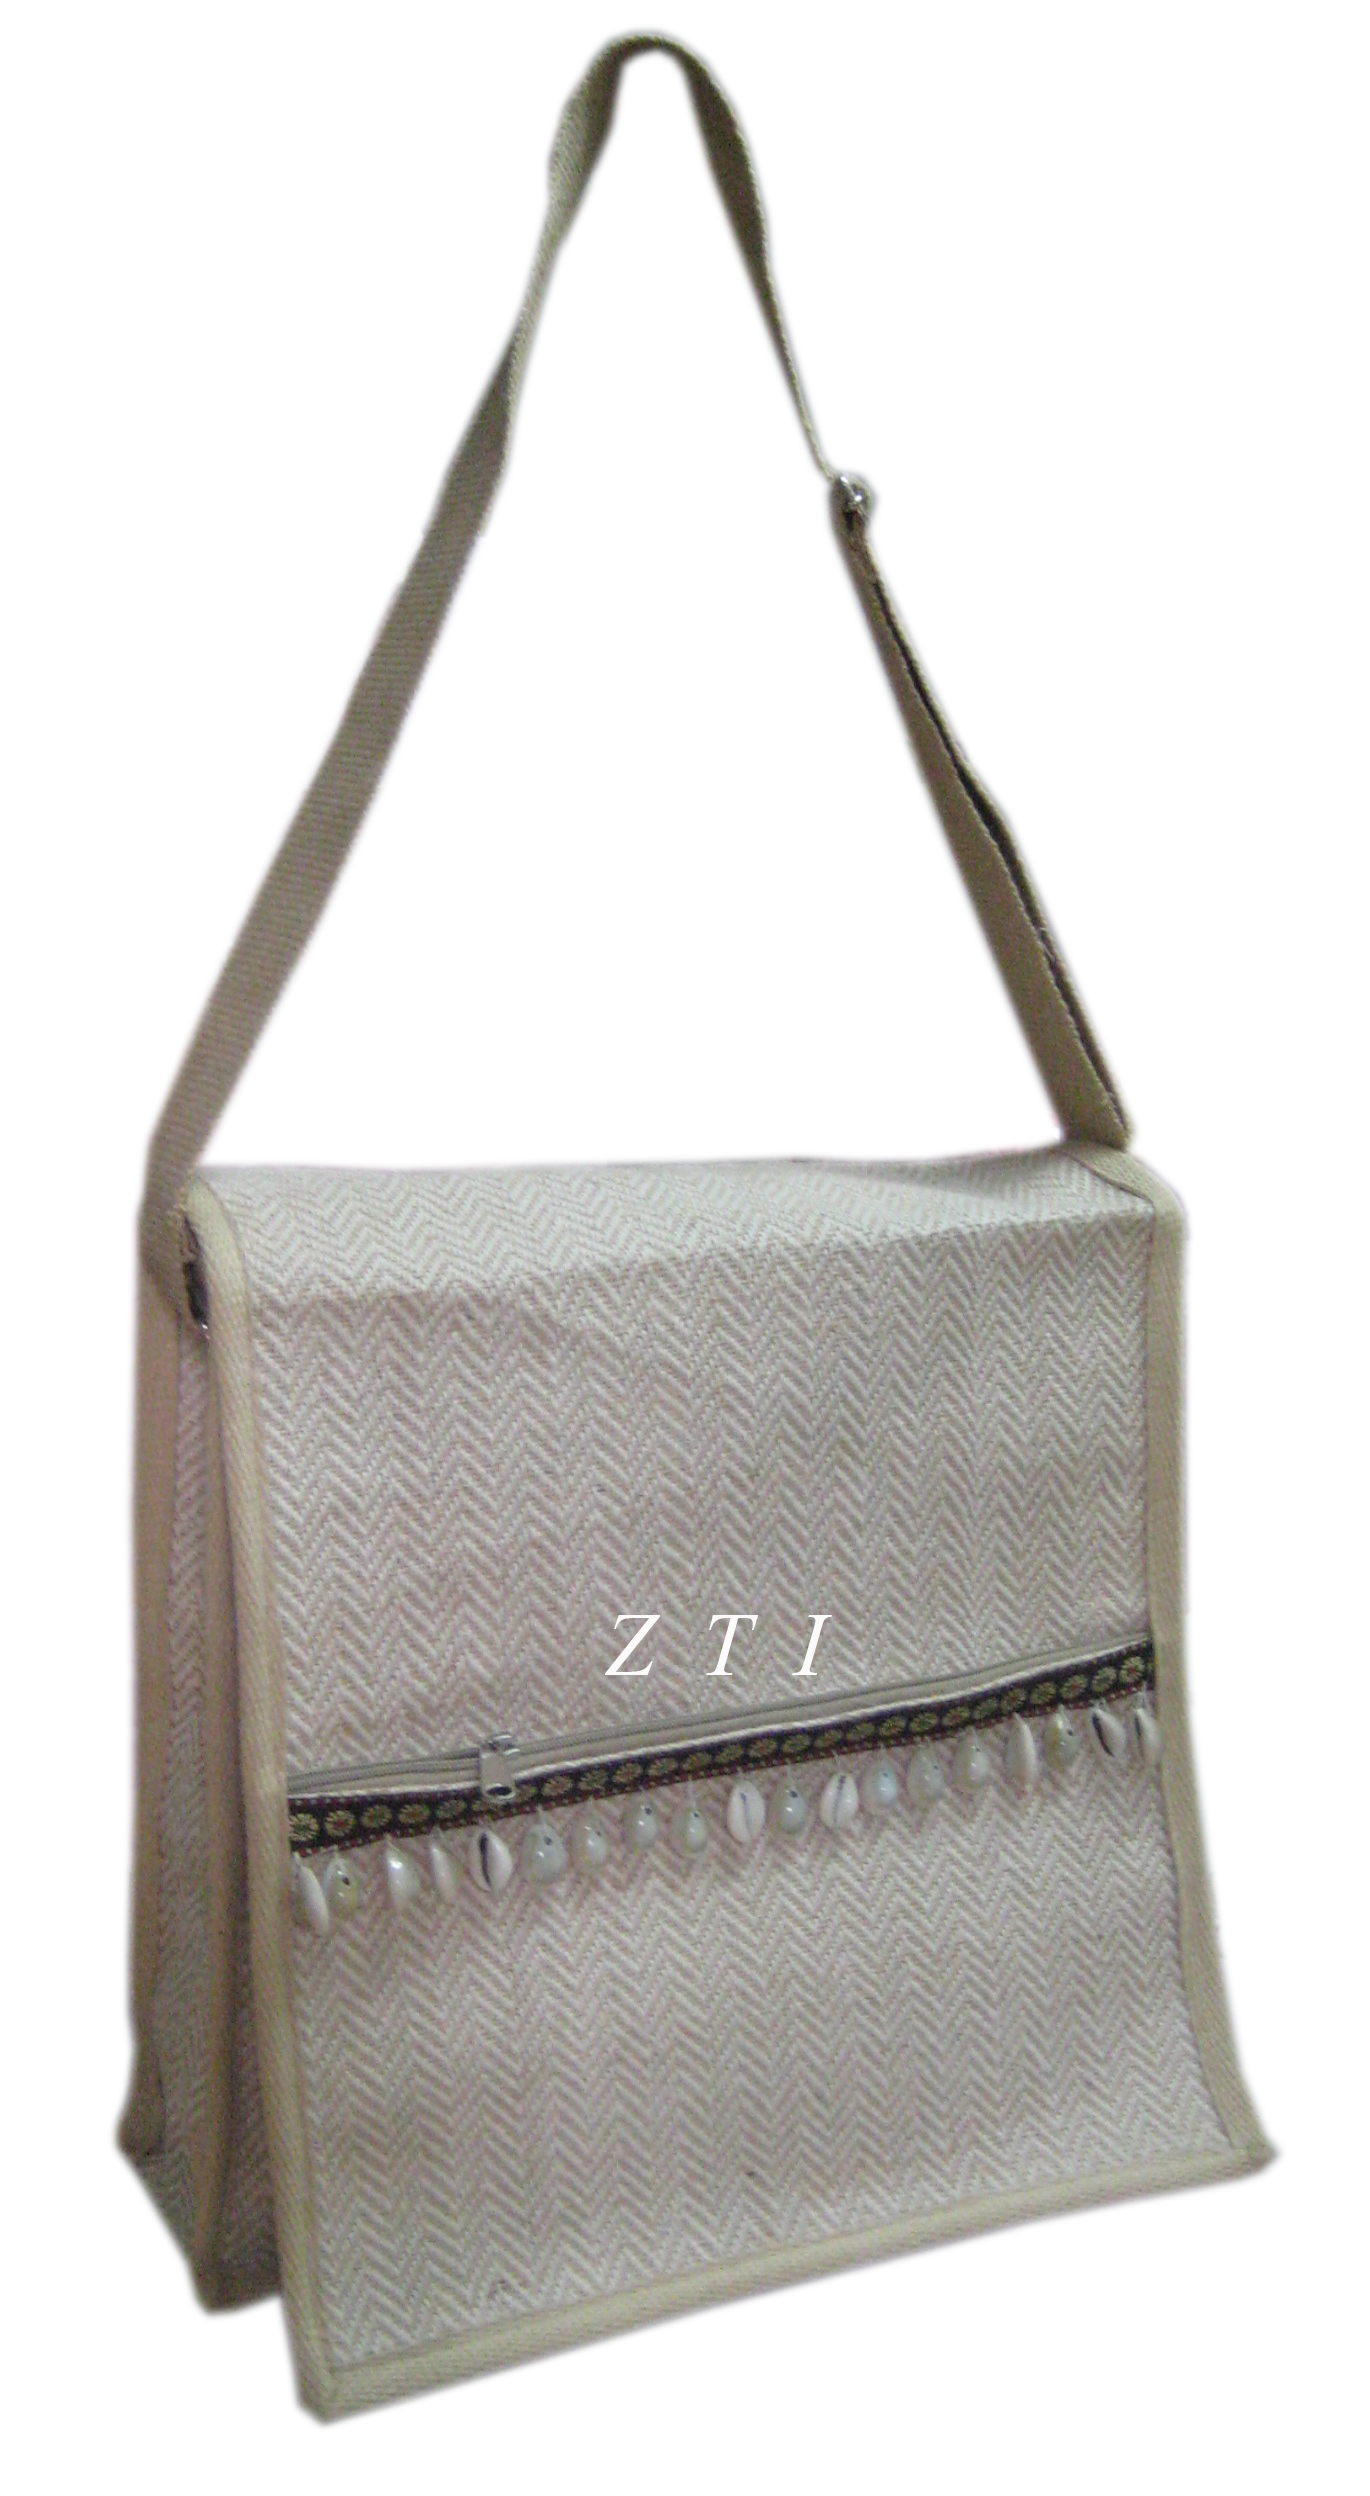 MODEL-NO.-JL-1238-SIZE-37x37x10cms.-PRICE-US-1.97